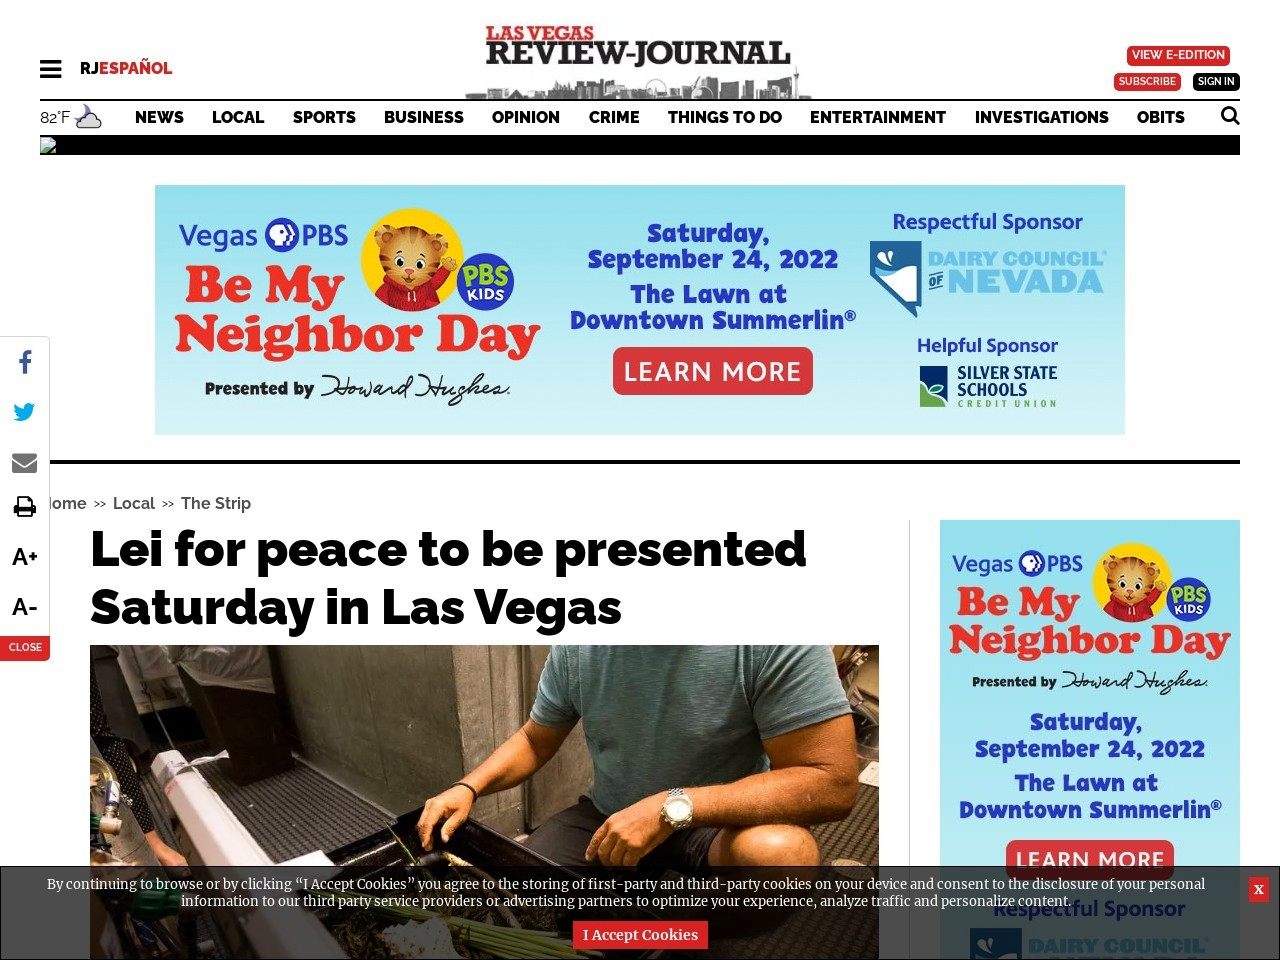 Lei for peace to be presented Saturday in Las Vegas